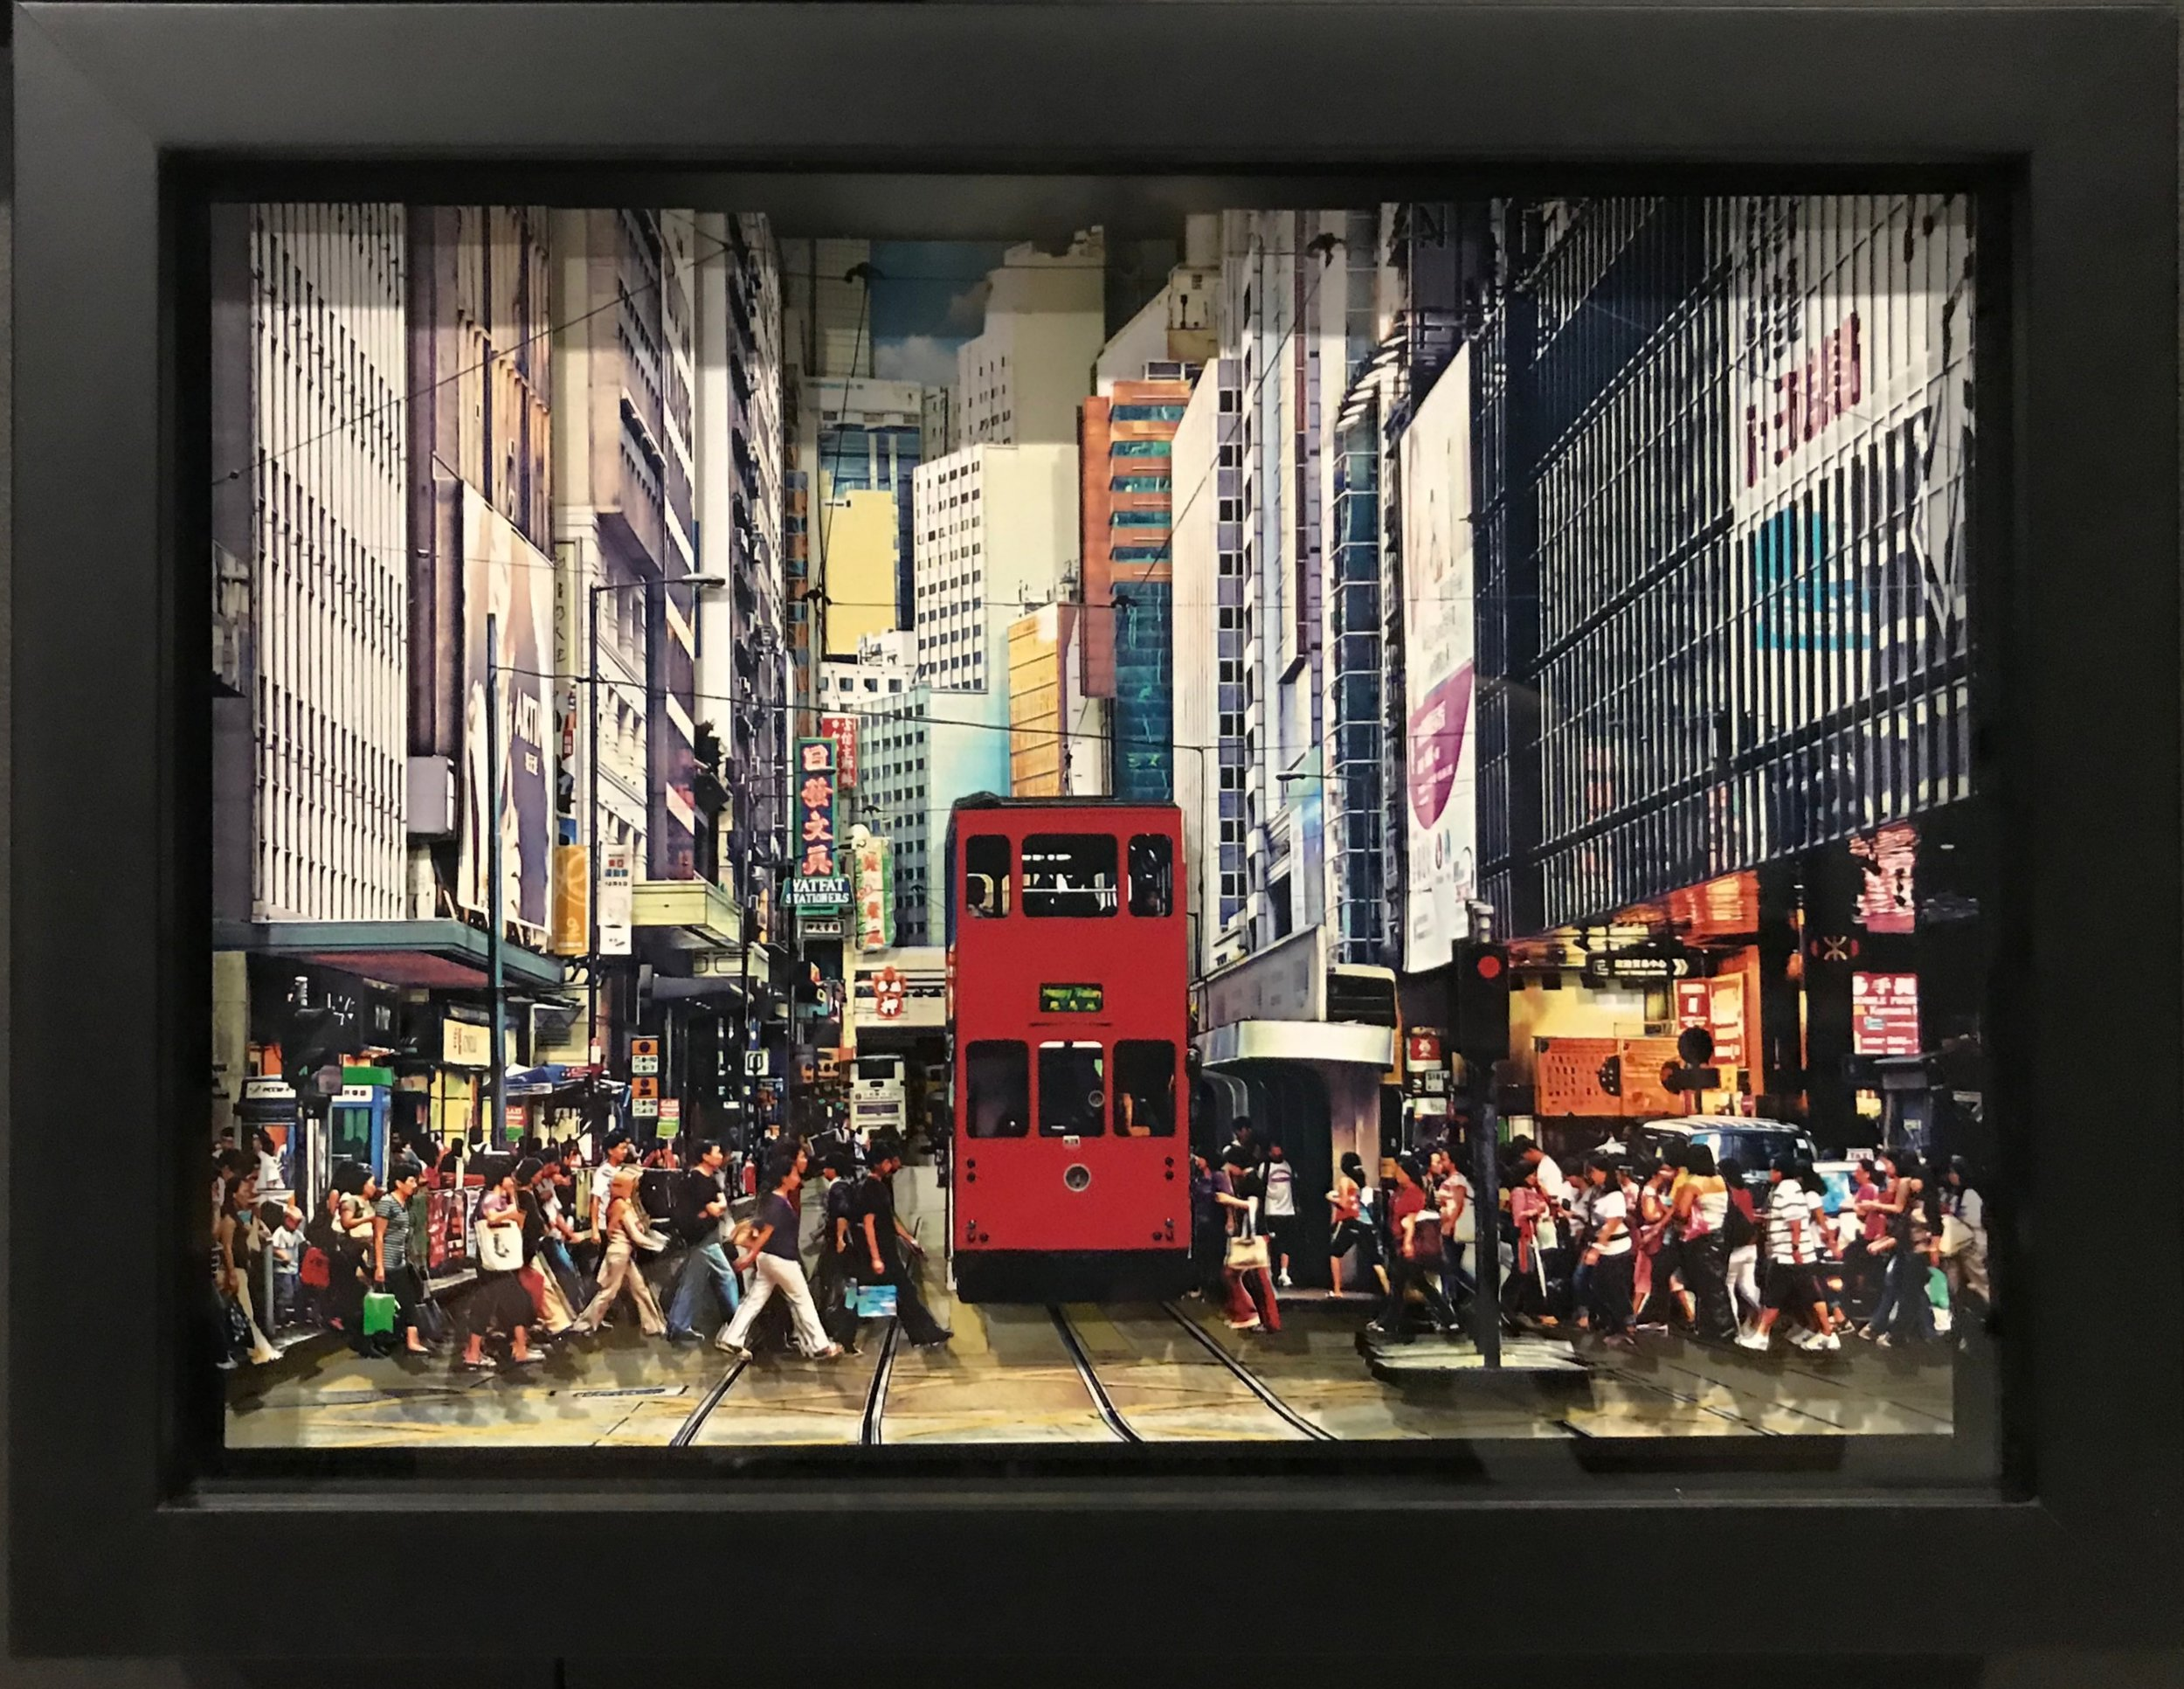 "葉家偉 Alexis Ip  ,  中環電車路,  Tramway in Central  (Hong Kong, 2018), ""Fotomo"" 3-D Collage open edition, H20 x 30 cm, HK$ 6,800 including frame"